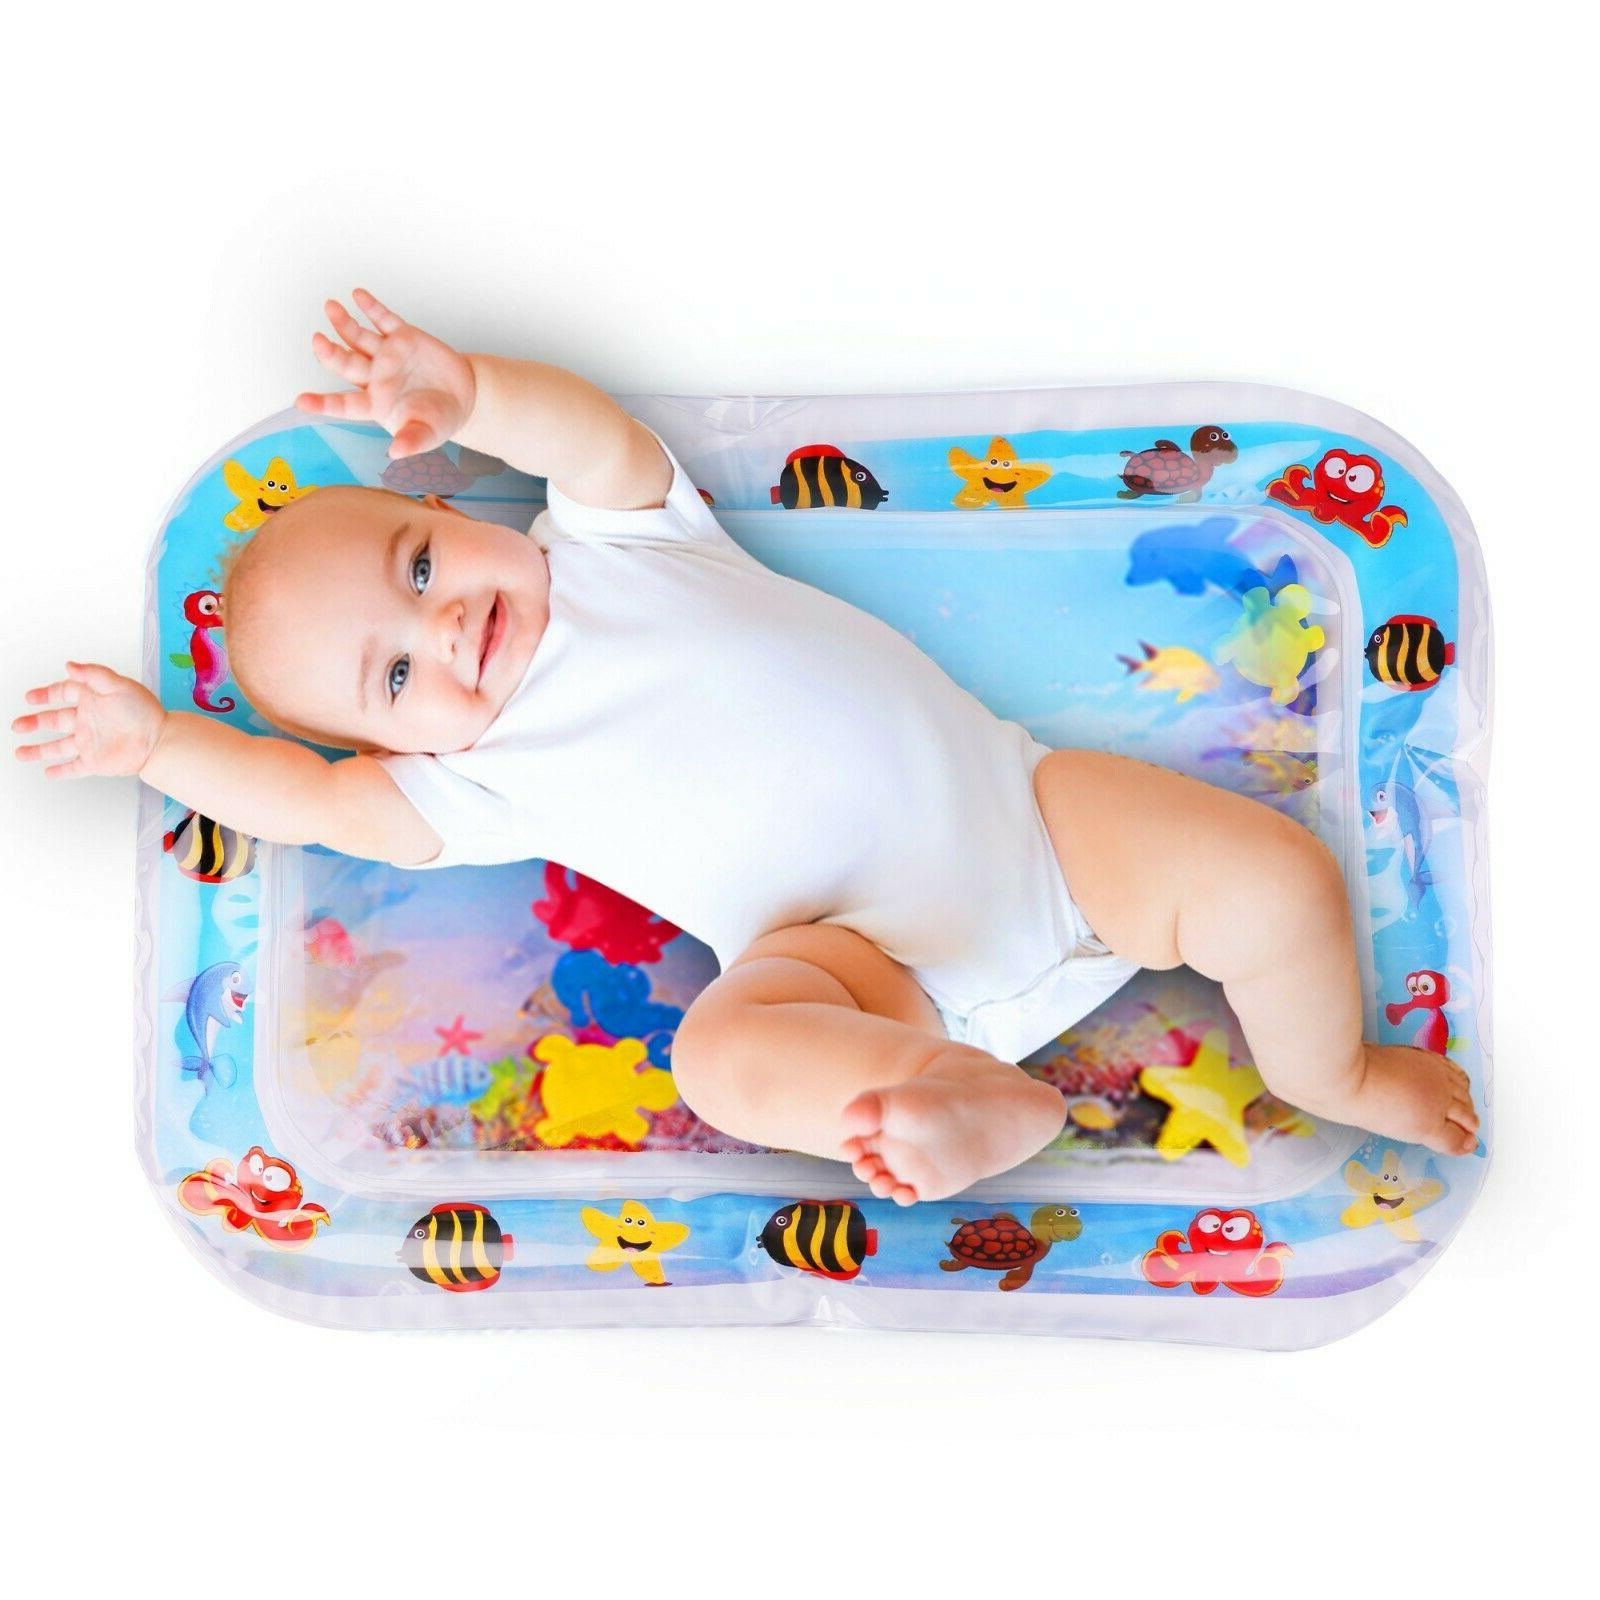 Tummy Time Play Mat Infants